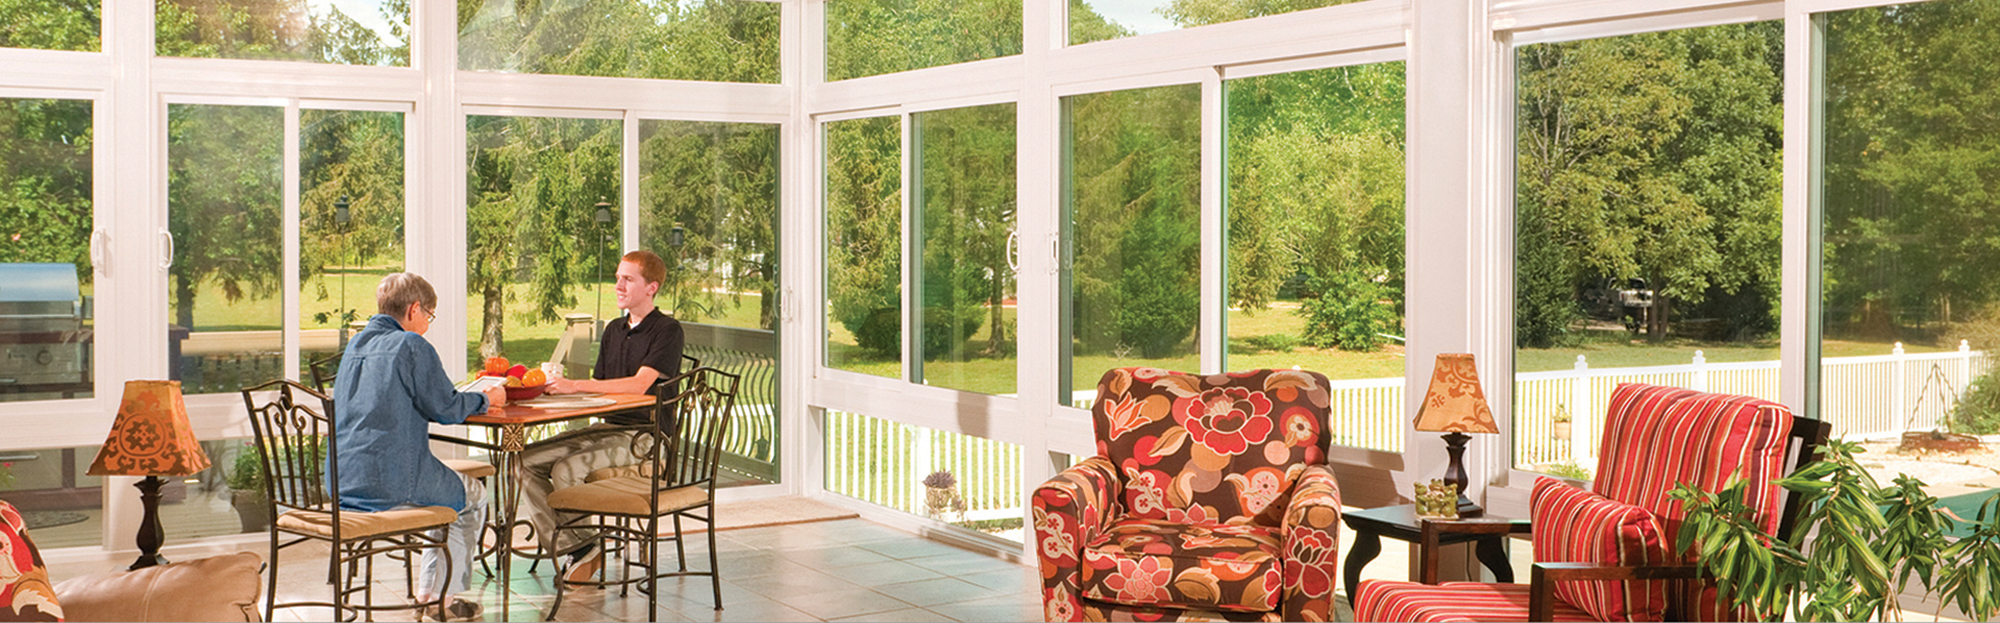 betterliving patio sunrooms or pittsburgh